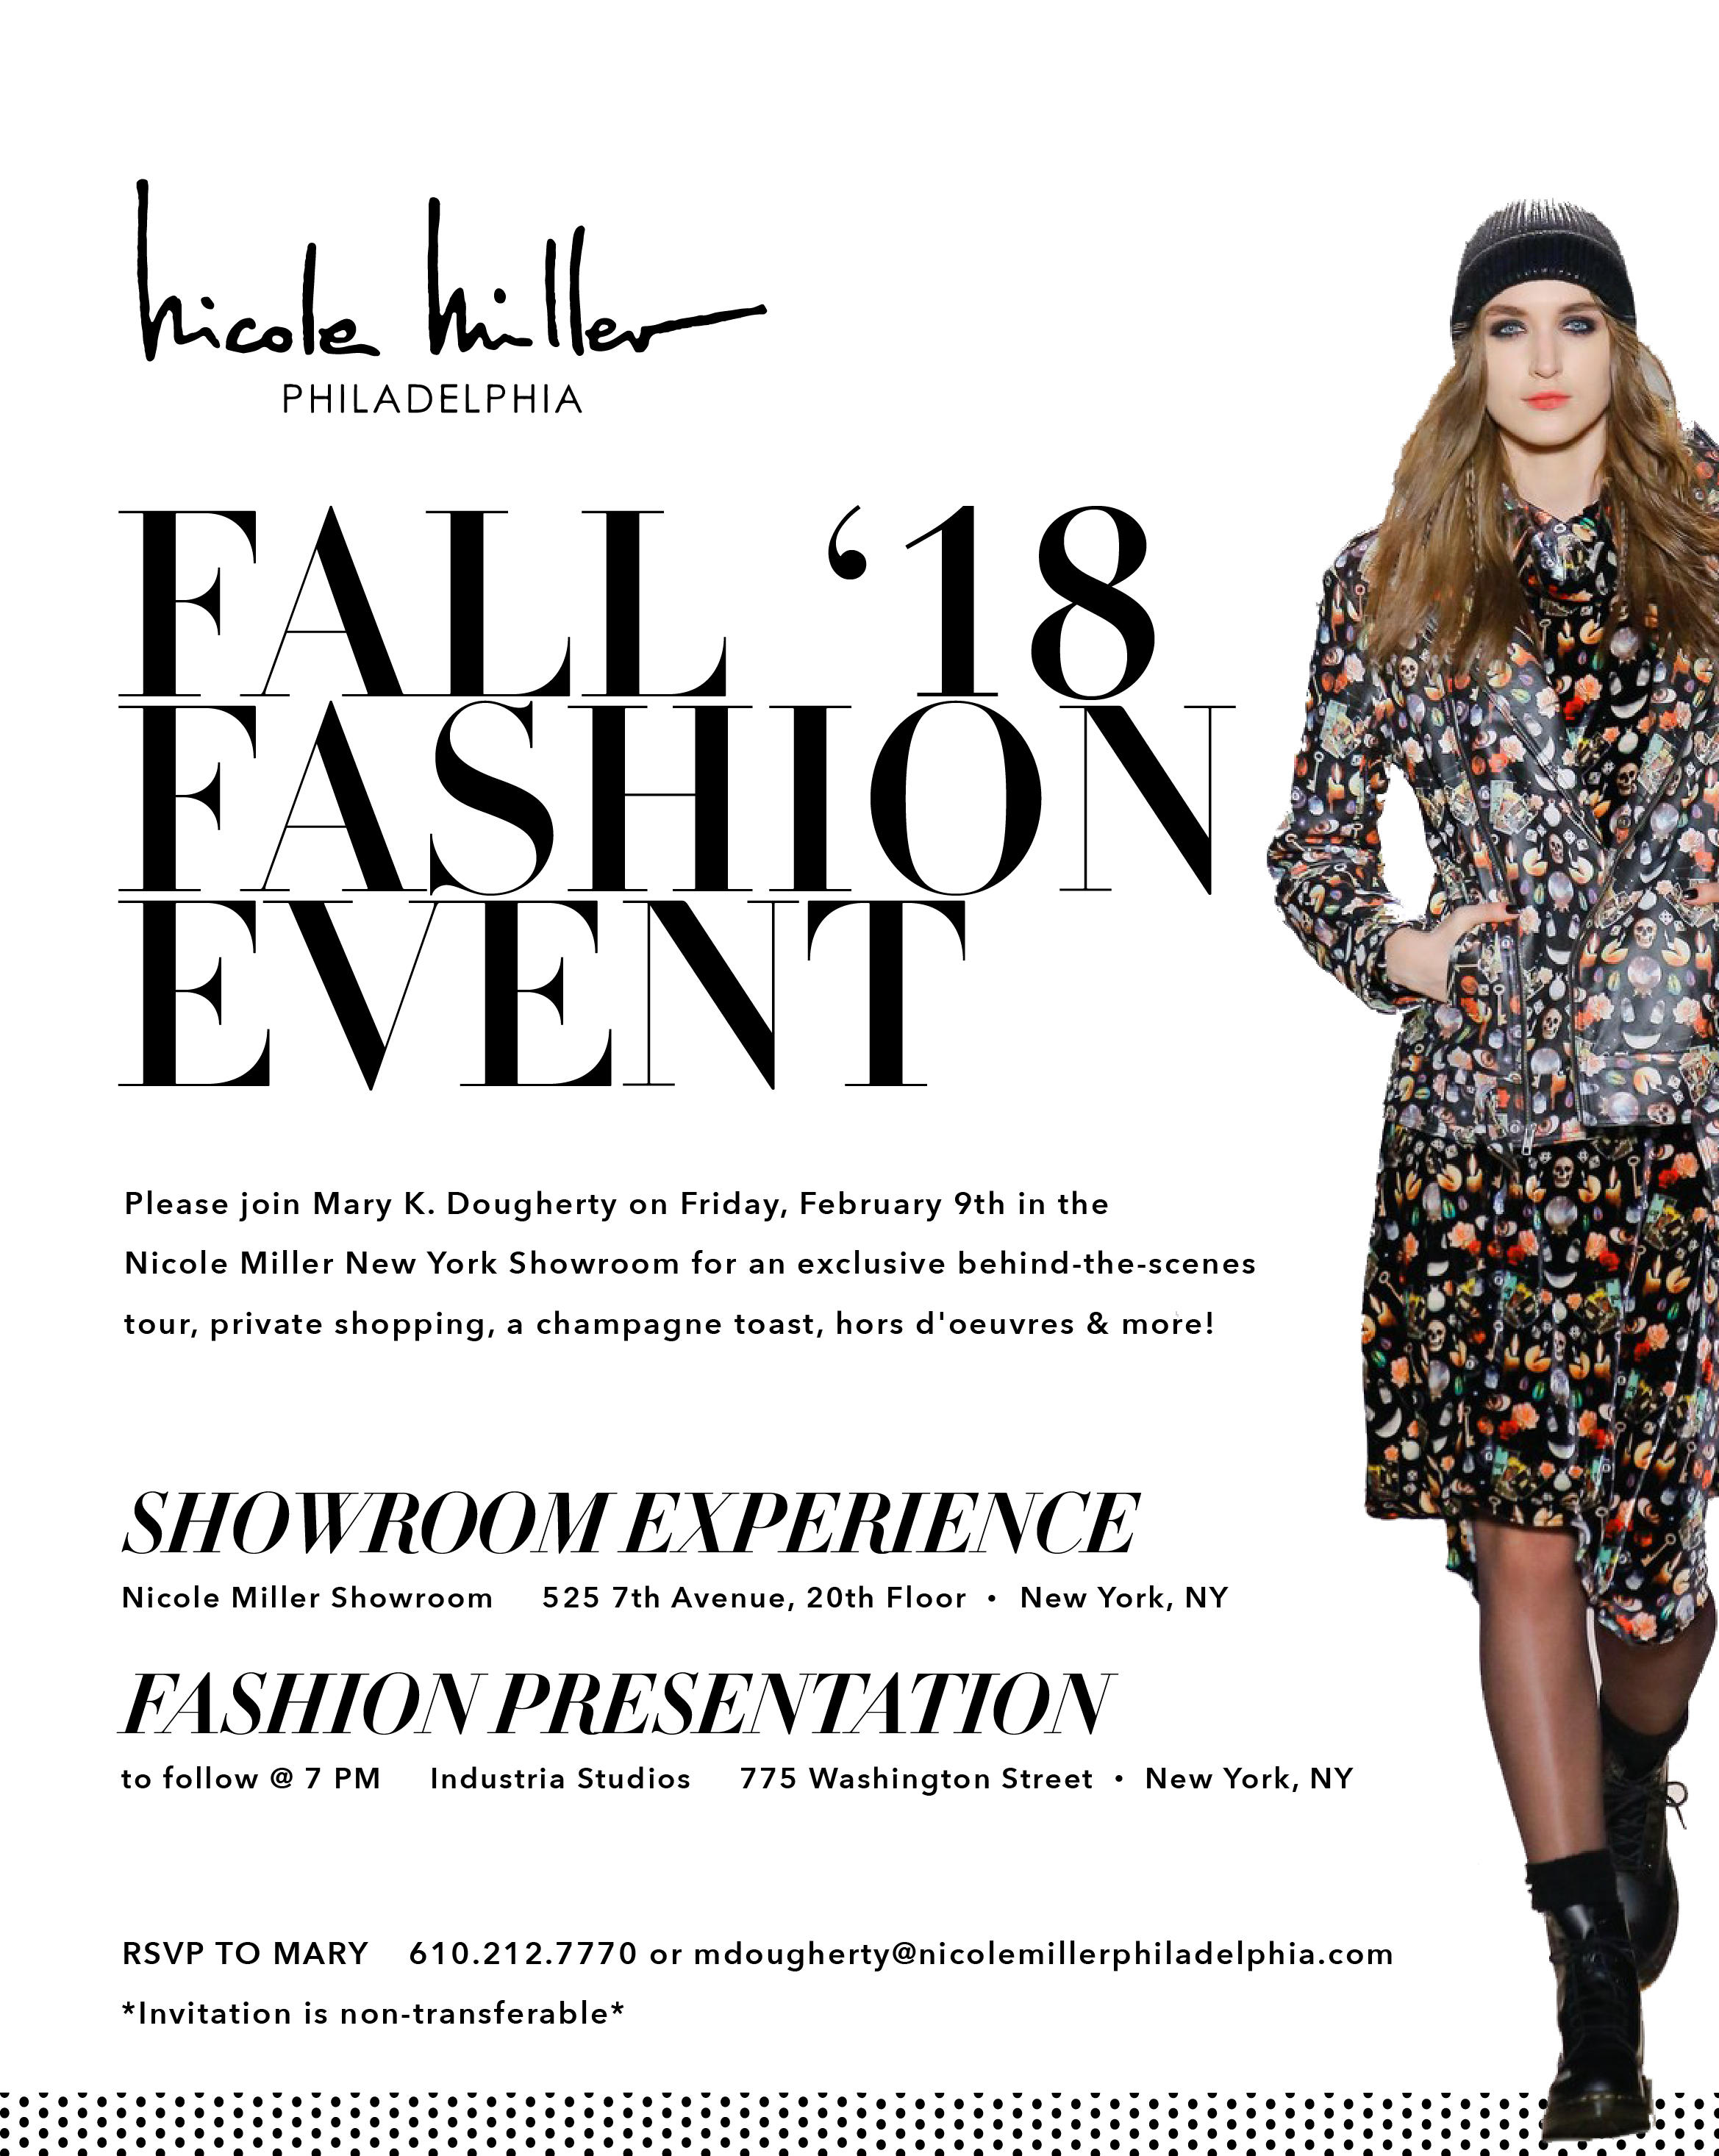 NicoleMiller_EmailTemplates_FW18Presentation-02.png